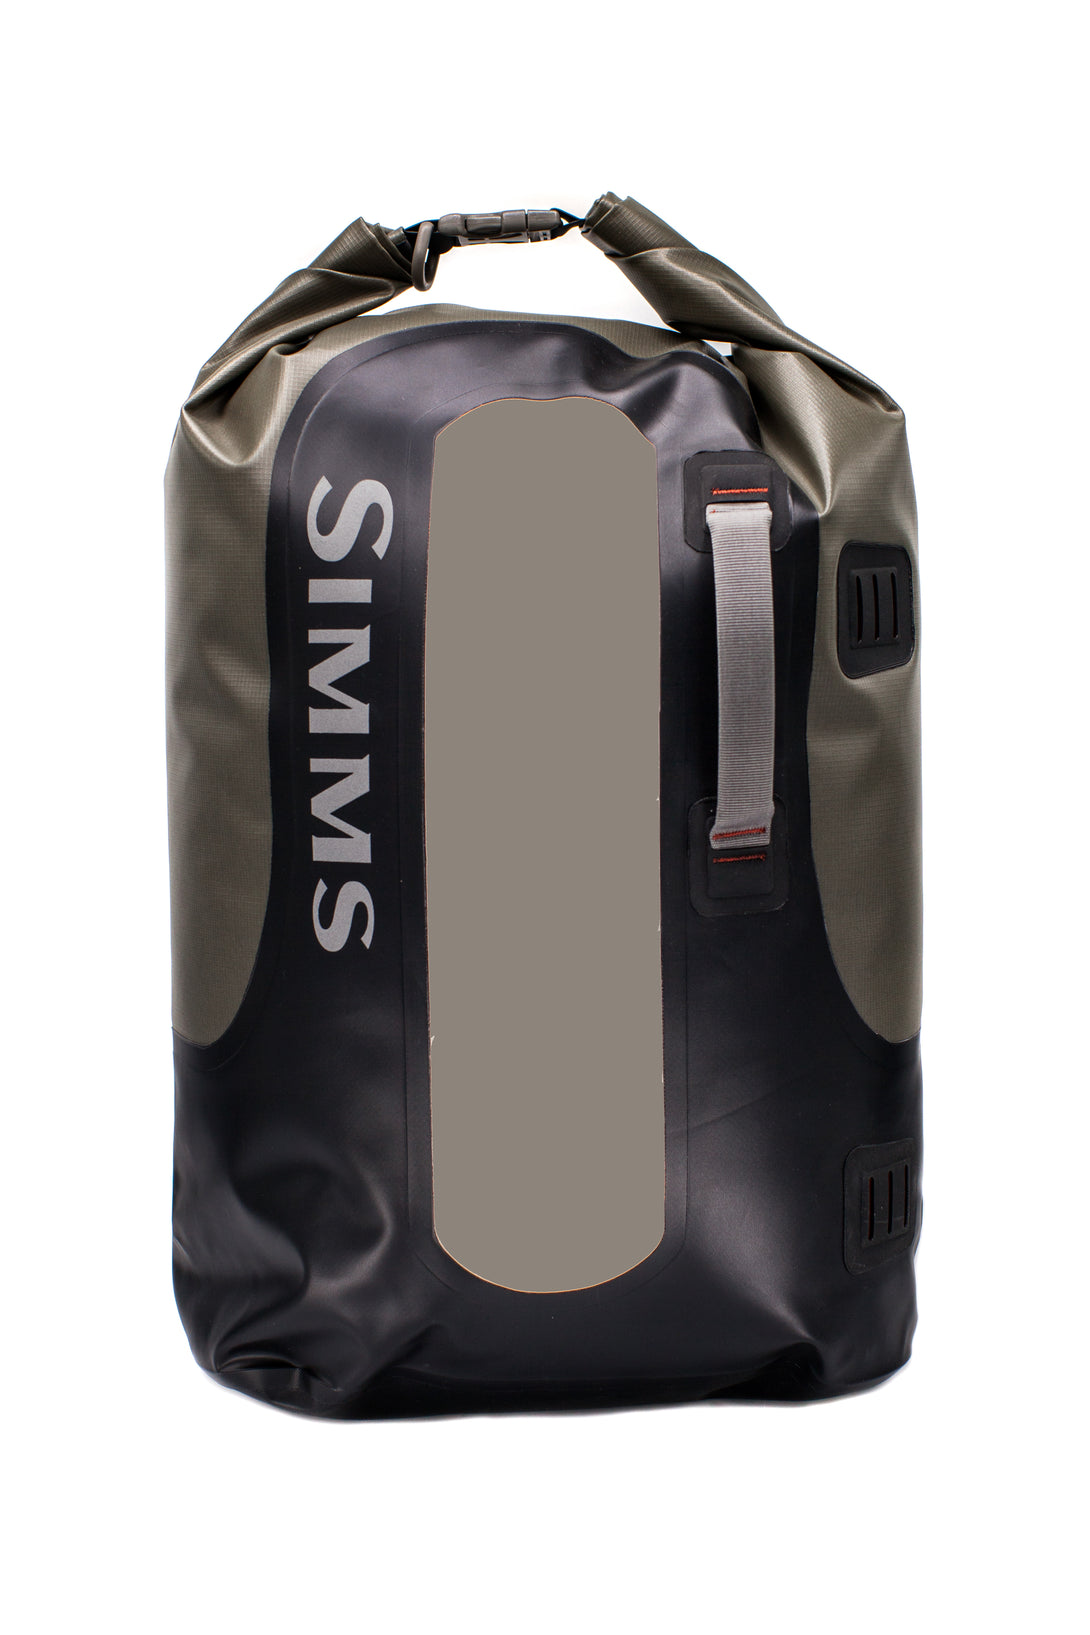 SImms Dry Creek Roll Top Pack,Packs,Simms-Confluence Fly Shop